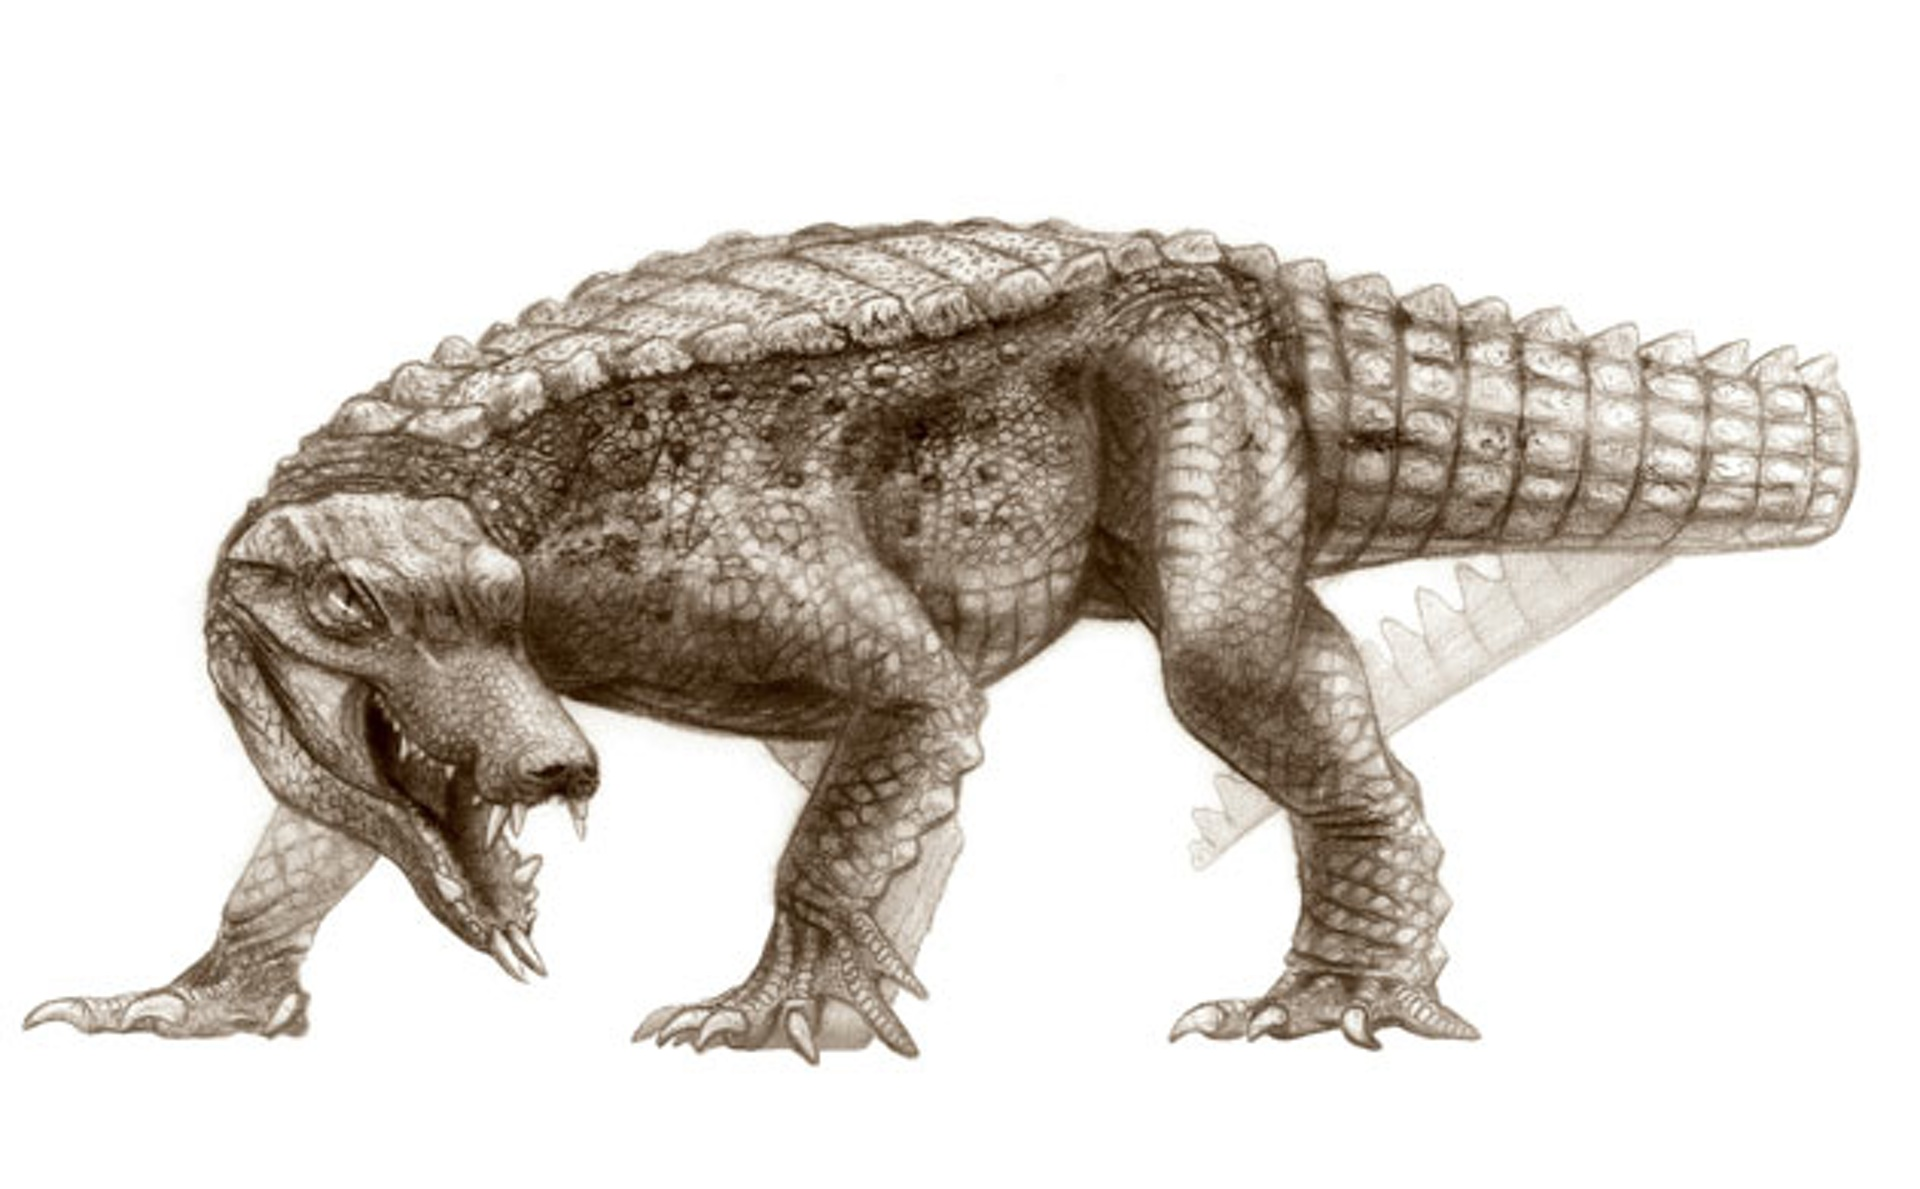 Cretaceous-Crocodyliforms-011